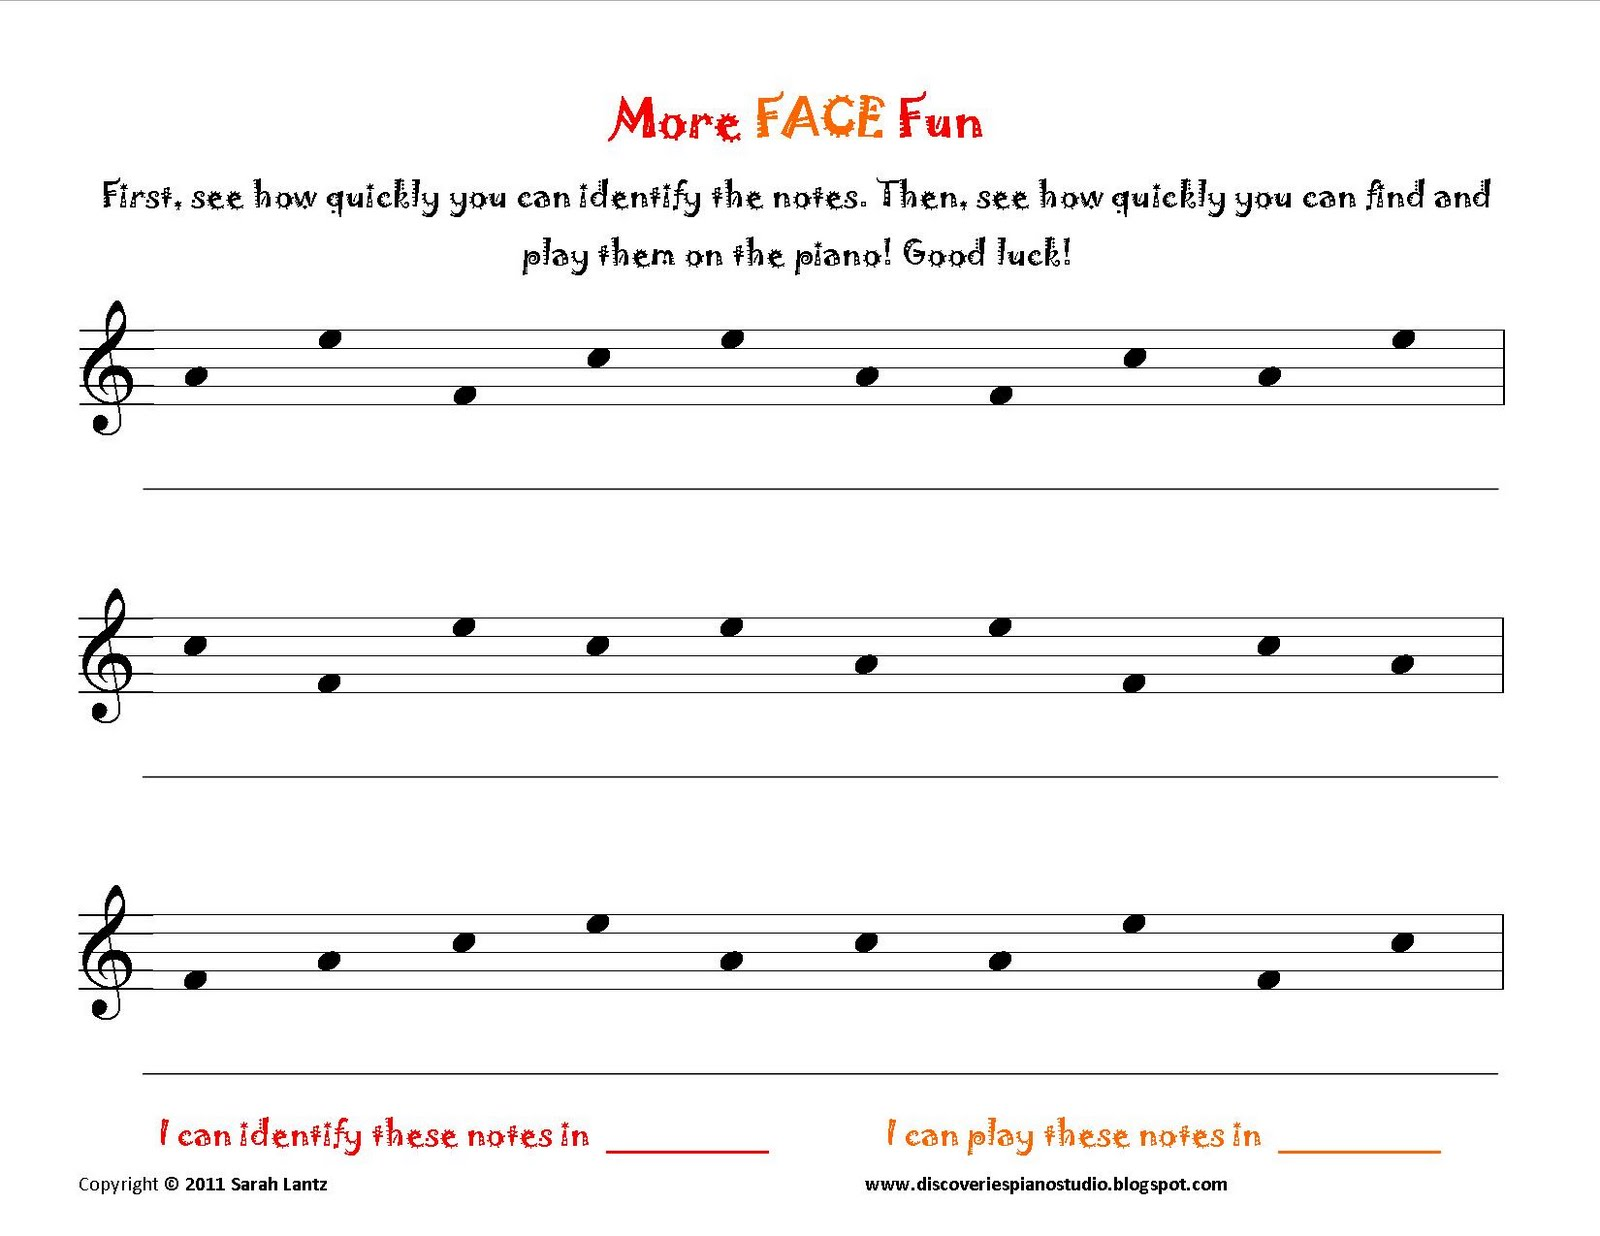 worksheet Music Reading Worksheets music note reading worksheets for school pigmu photos pigmu